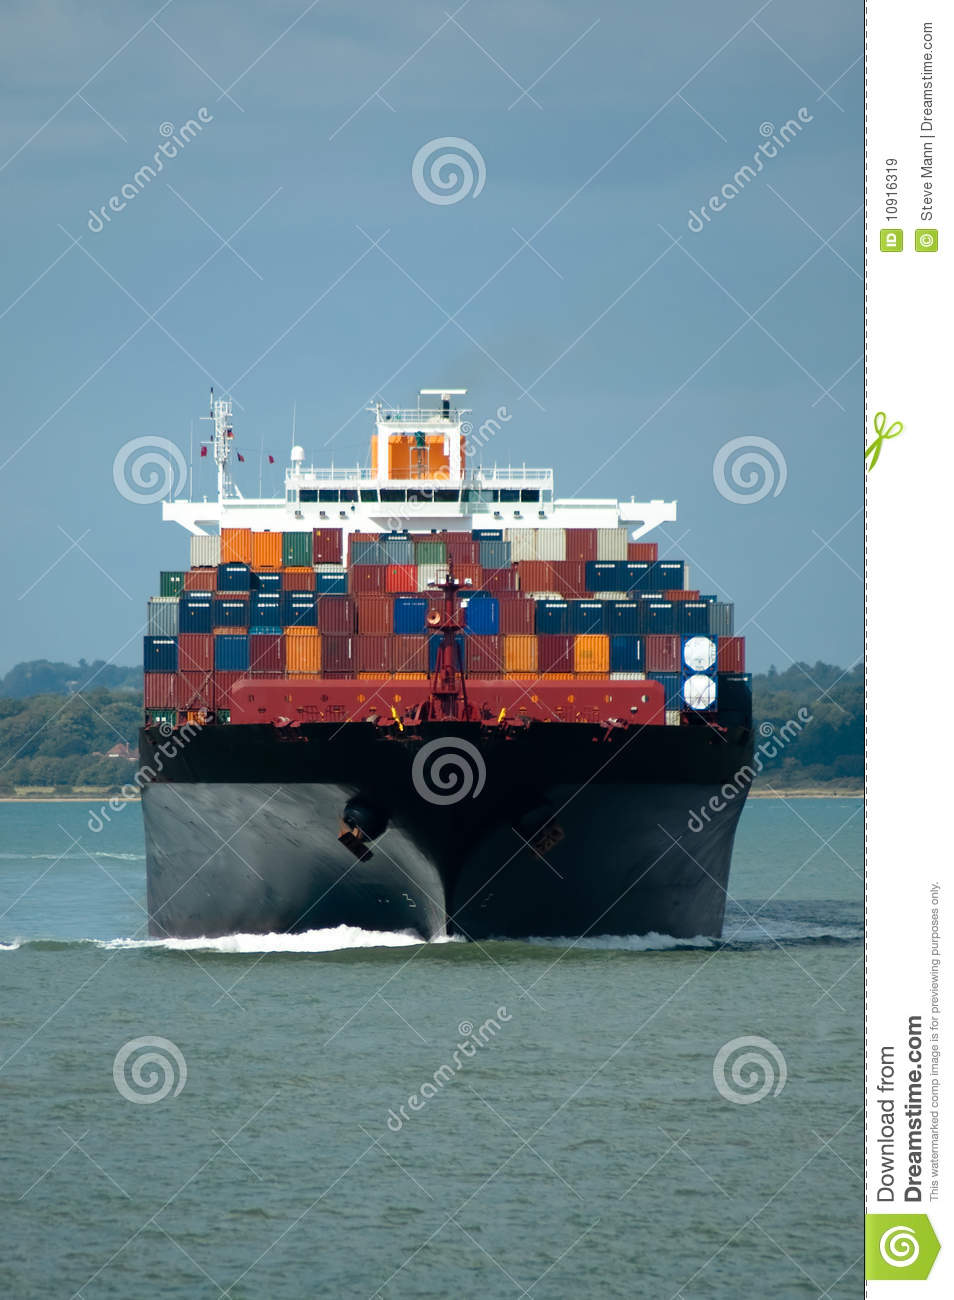 Container Ship Stock Image Image Of Import Boats Shipment 10916319